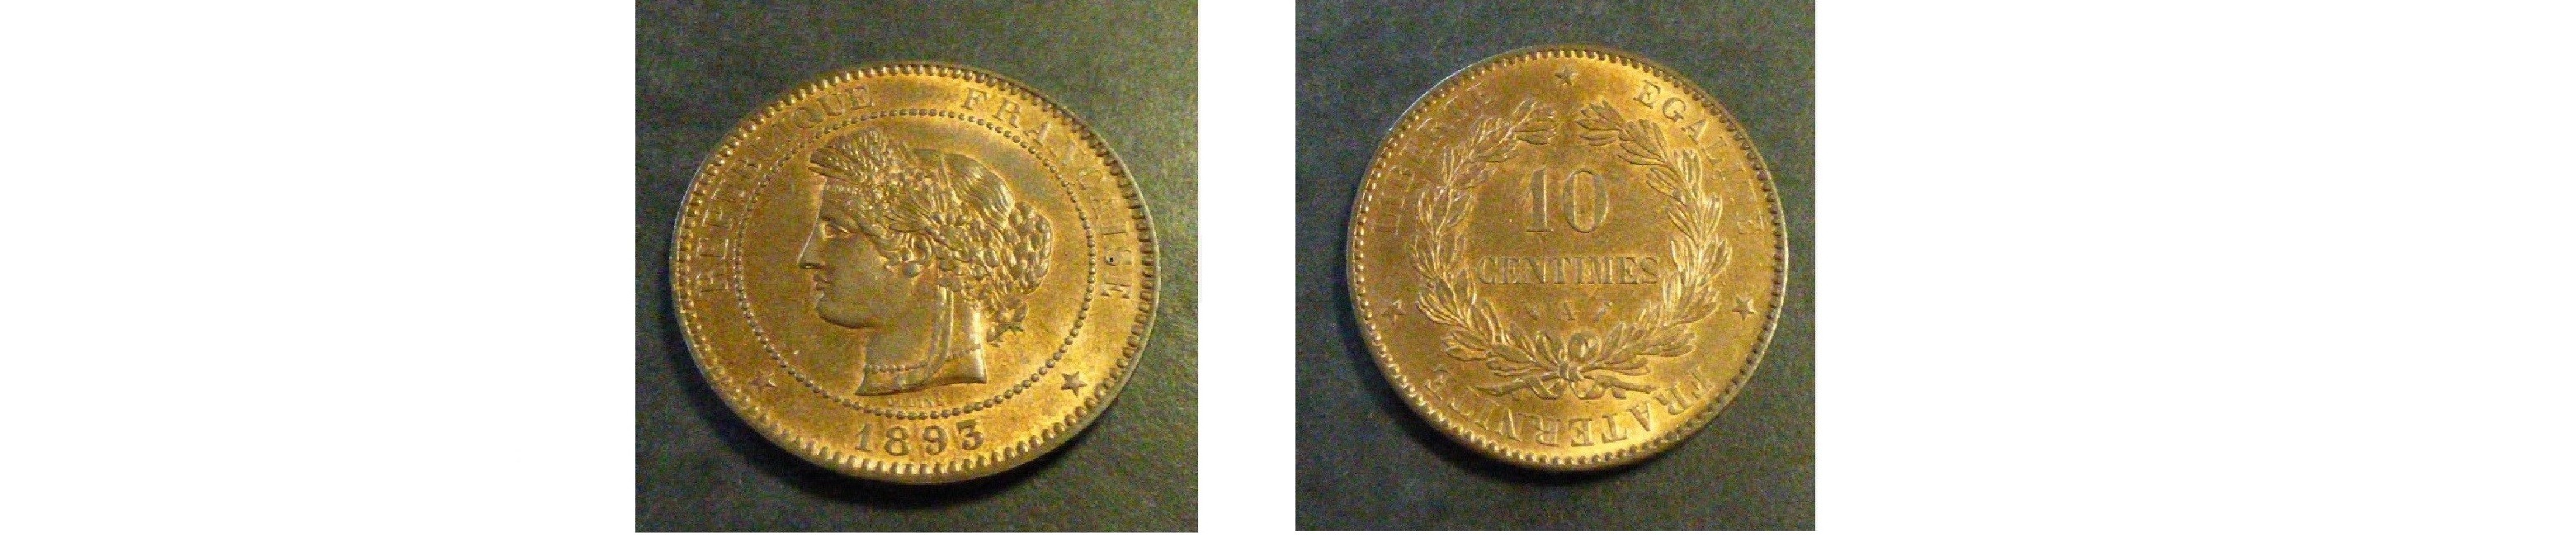 FRANCE 10 CENTS 1893 BRONZE 10G (SUP+/XF+/VZ+)